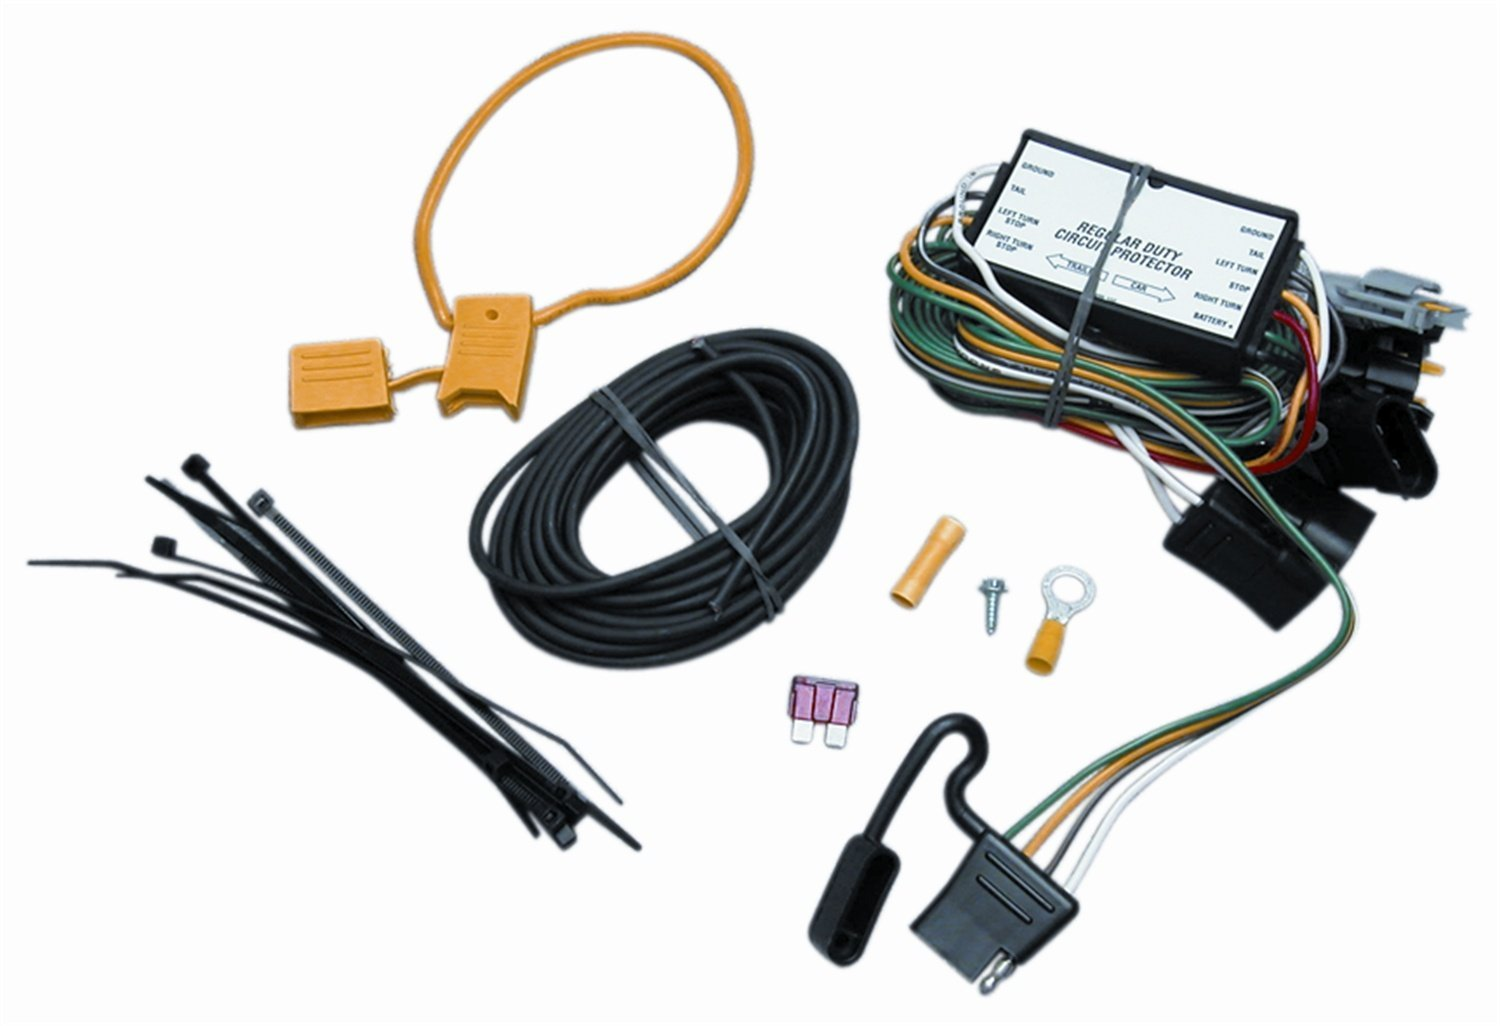 Trailer Wiring 01-03 Mazda Tribute 95-00 Explorer 92-94 Ford E